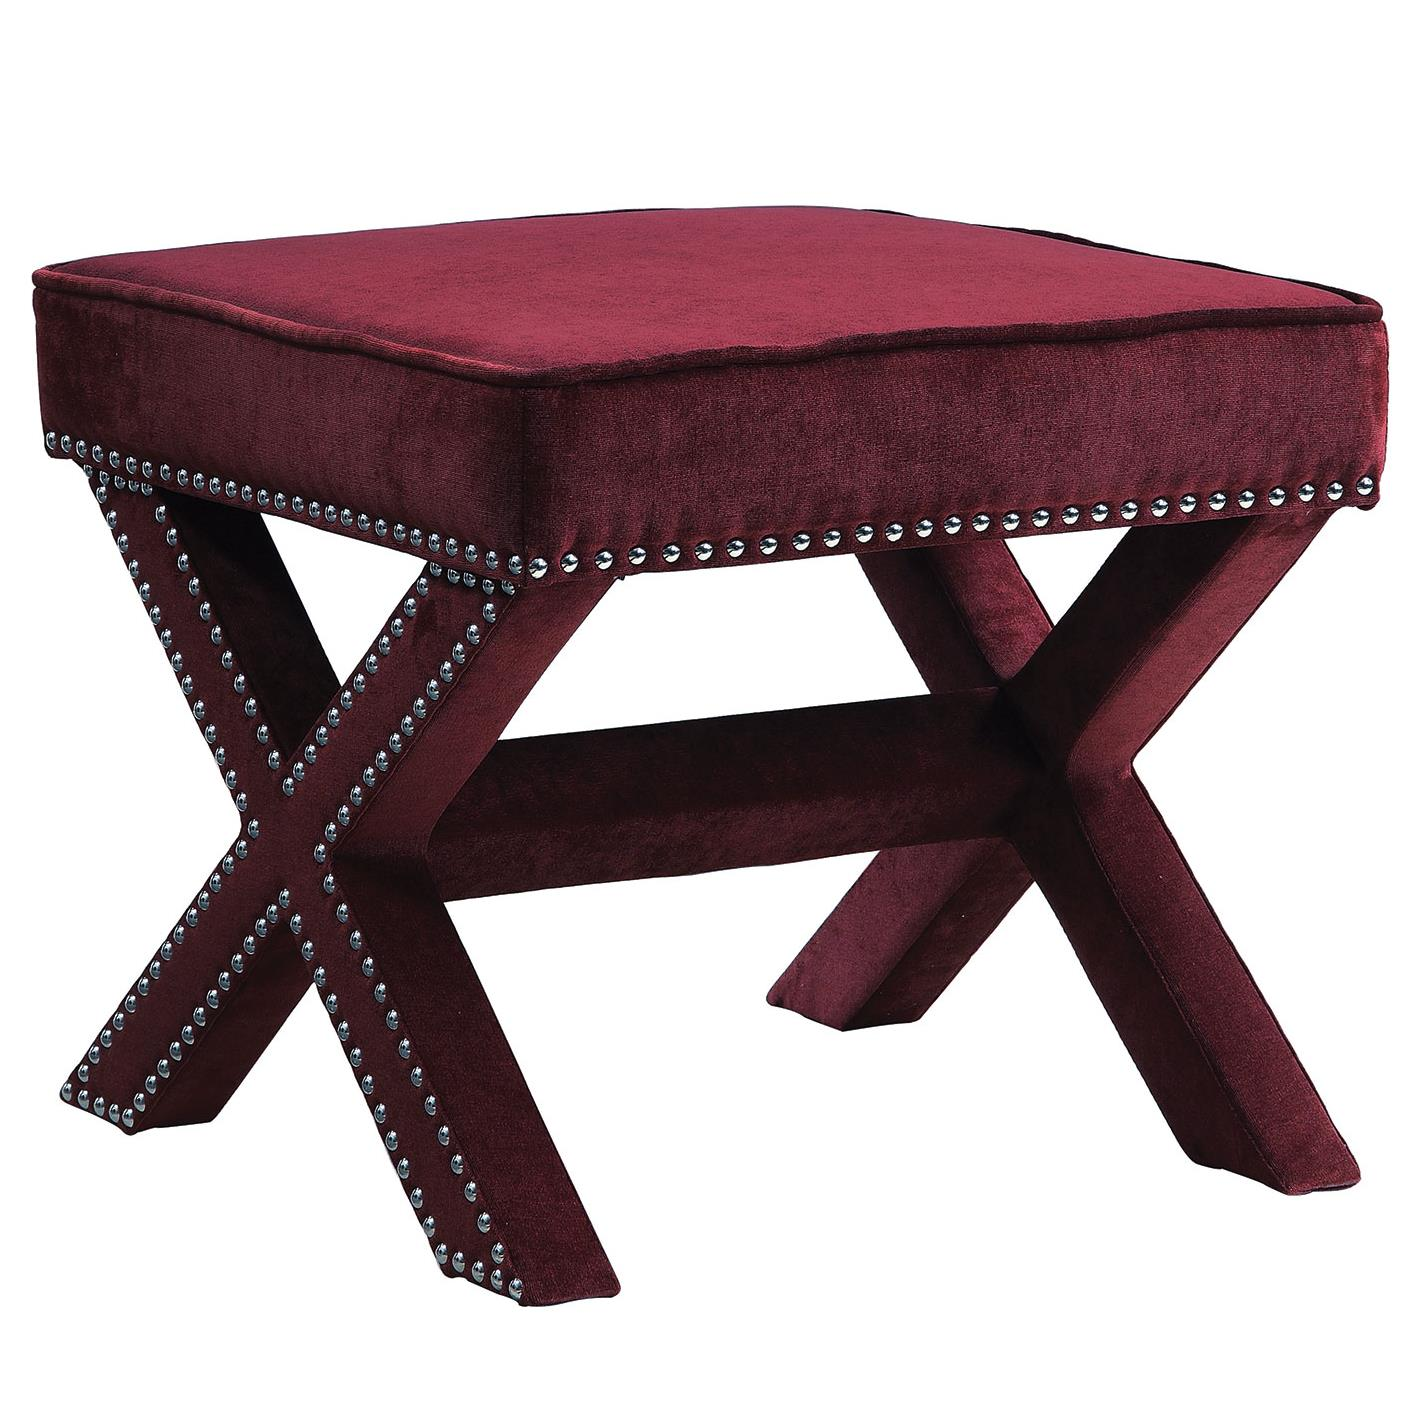 products_coaster_color_ottomans - coaster_500417-b1